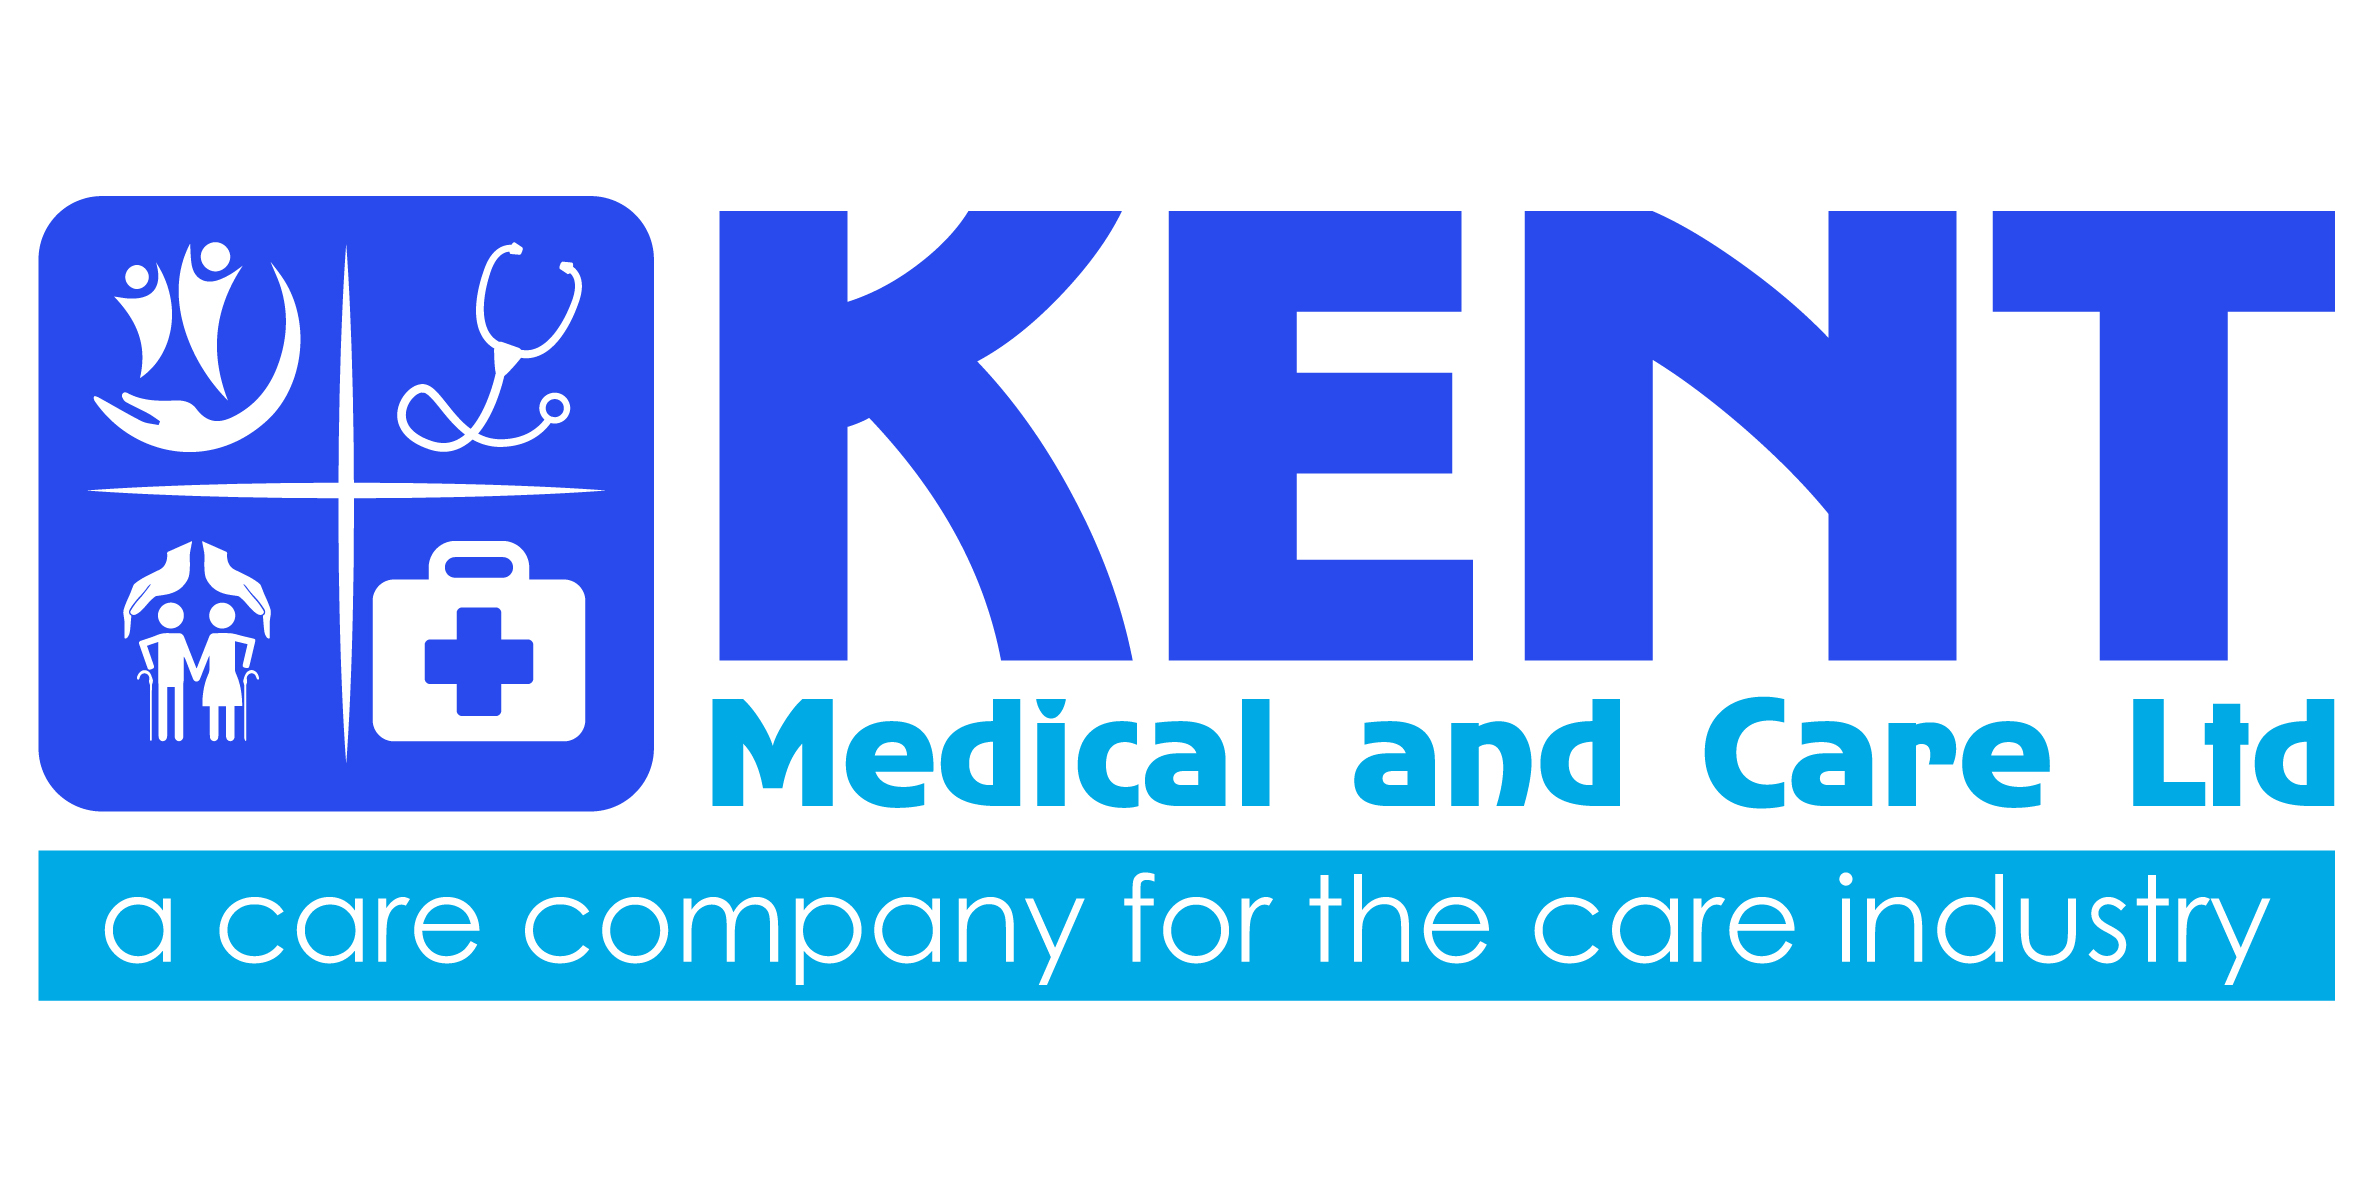 Kent Medical and Care Ltd (logo): A care company for the care industry